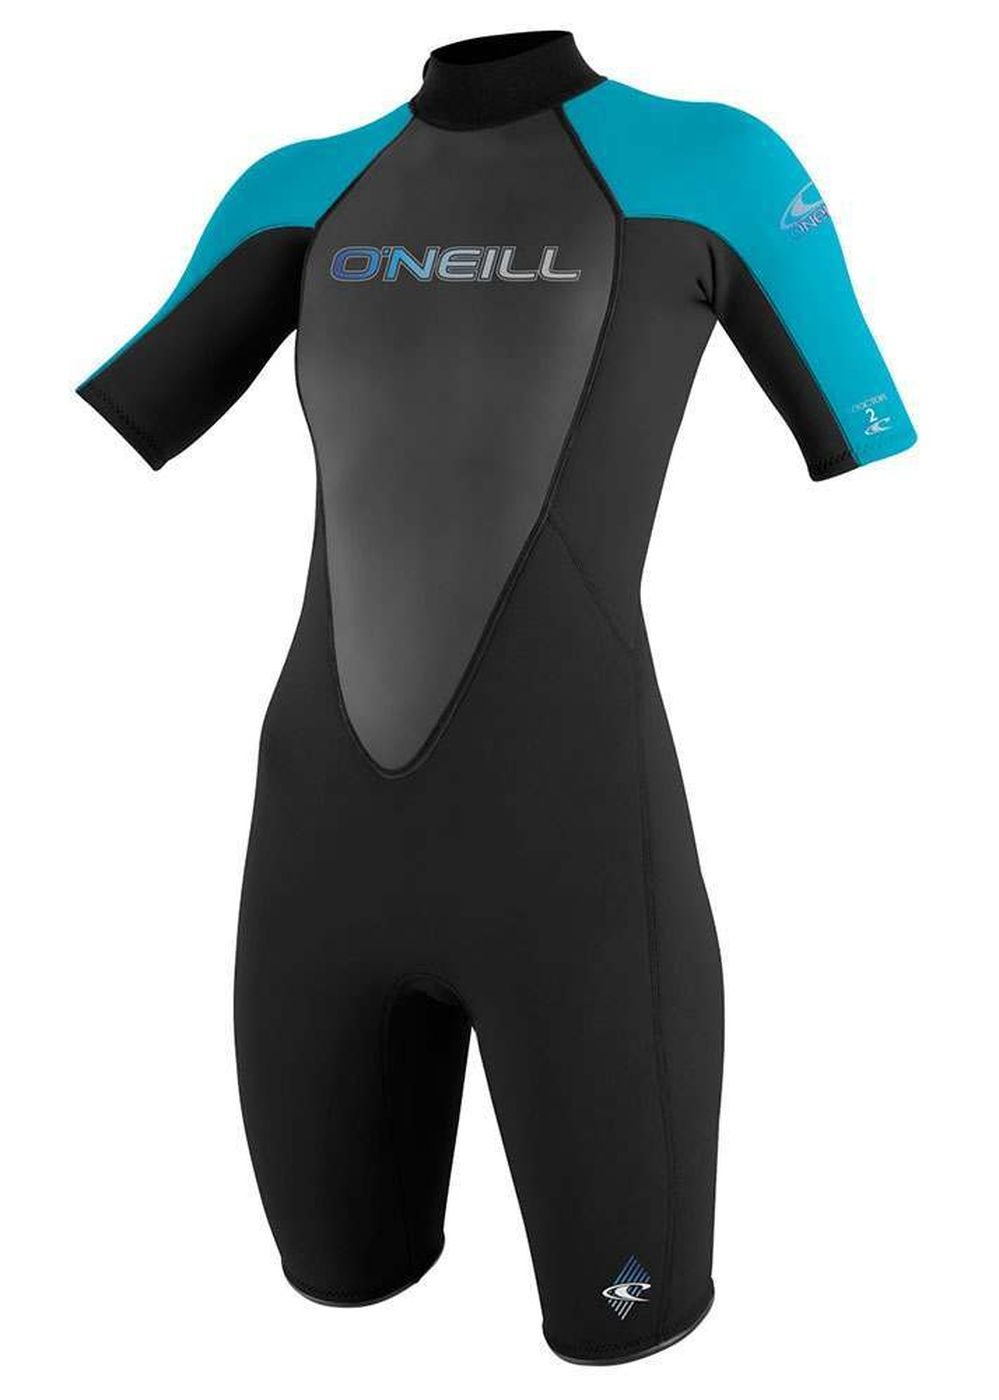 Oneill Womens Reactor 2mm Shorty Wetsuit Blk/turq Picture